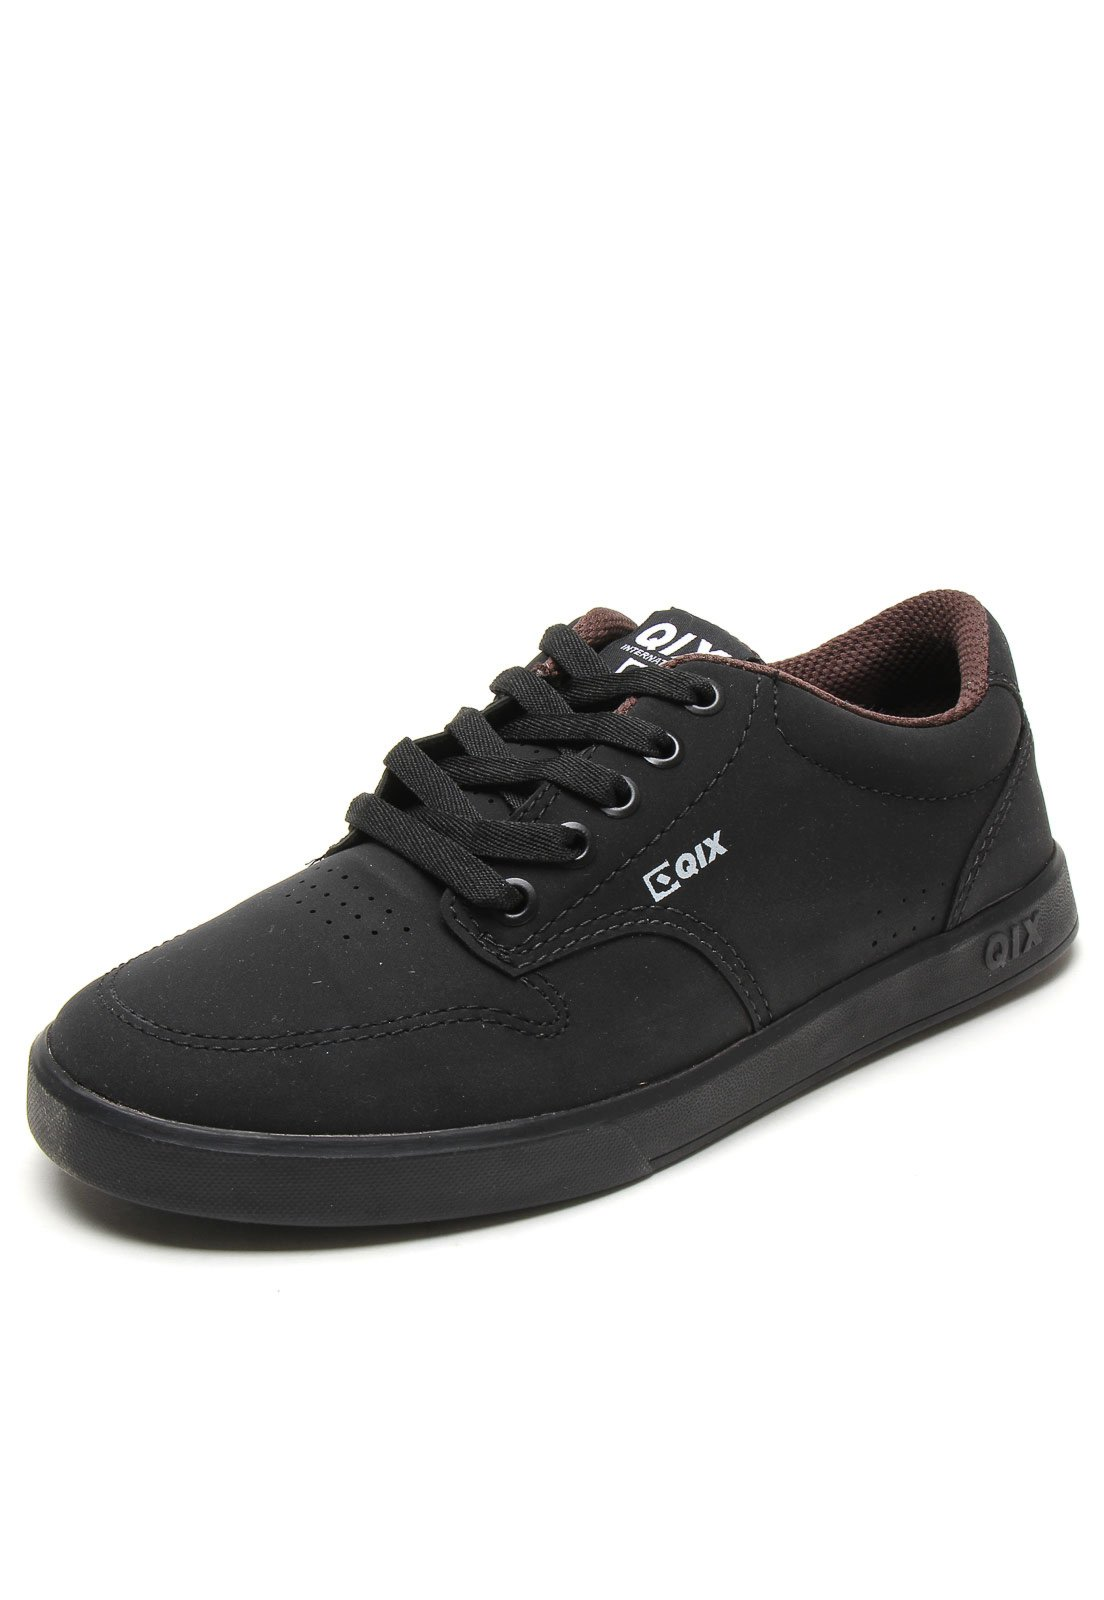 tenis qix new base preto